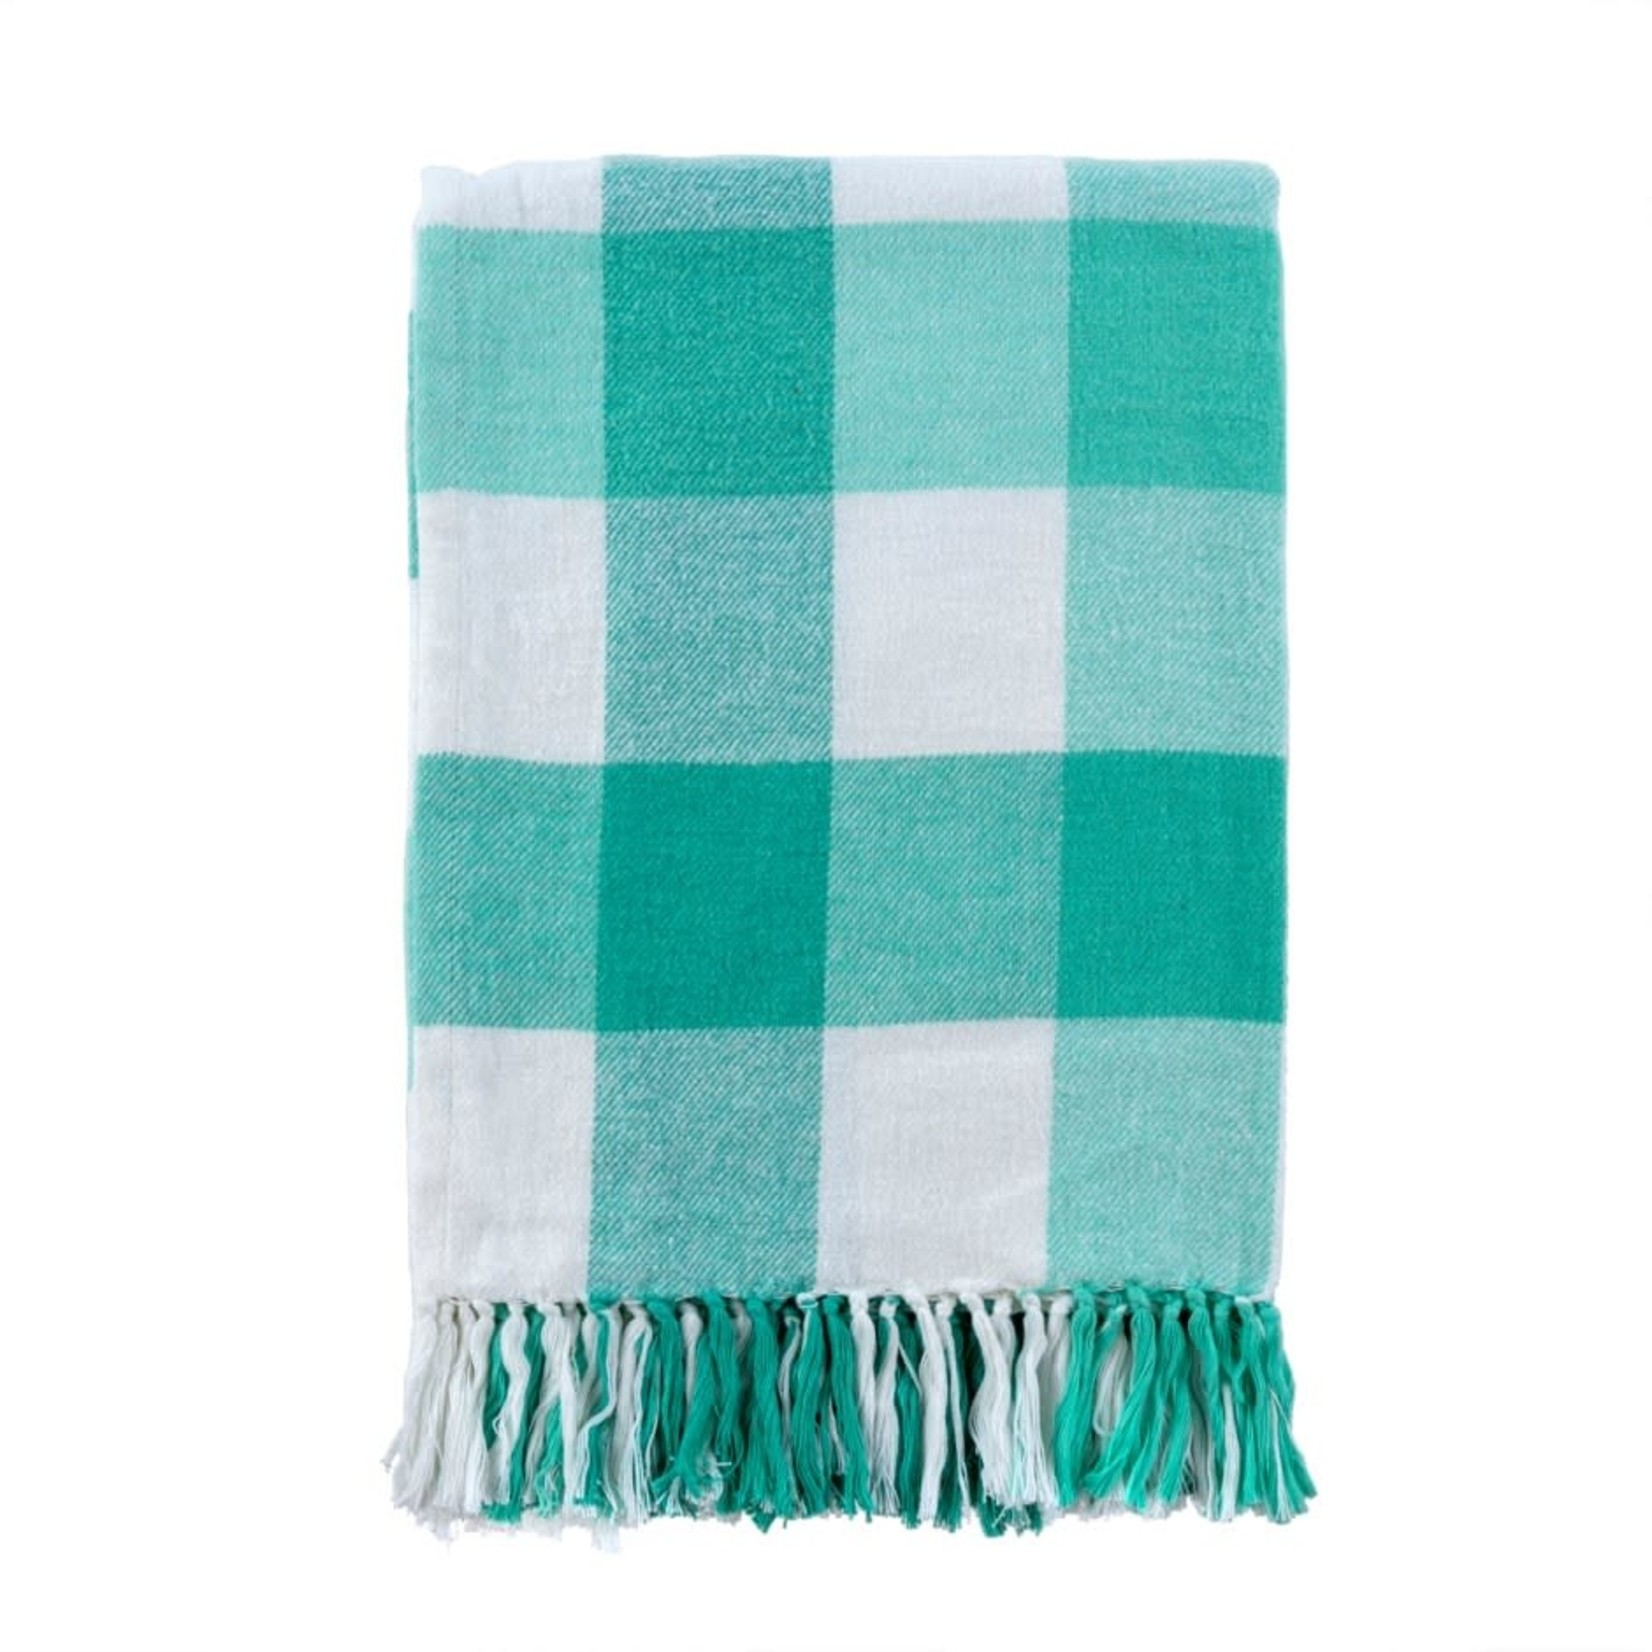 Gingham Picnic Throw, Turquoise